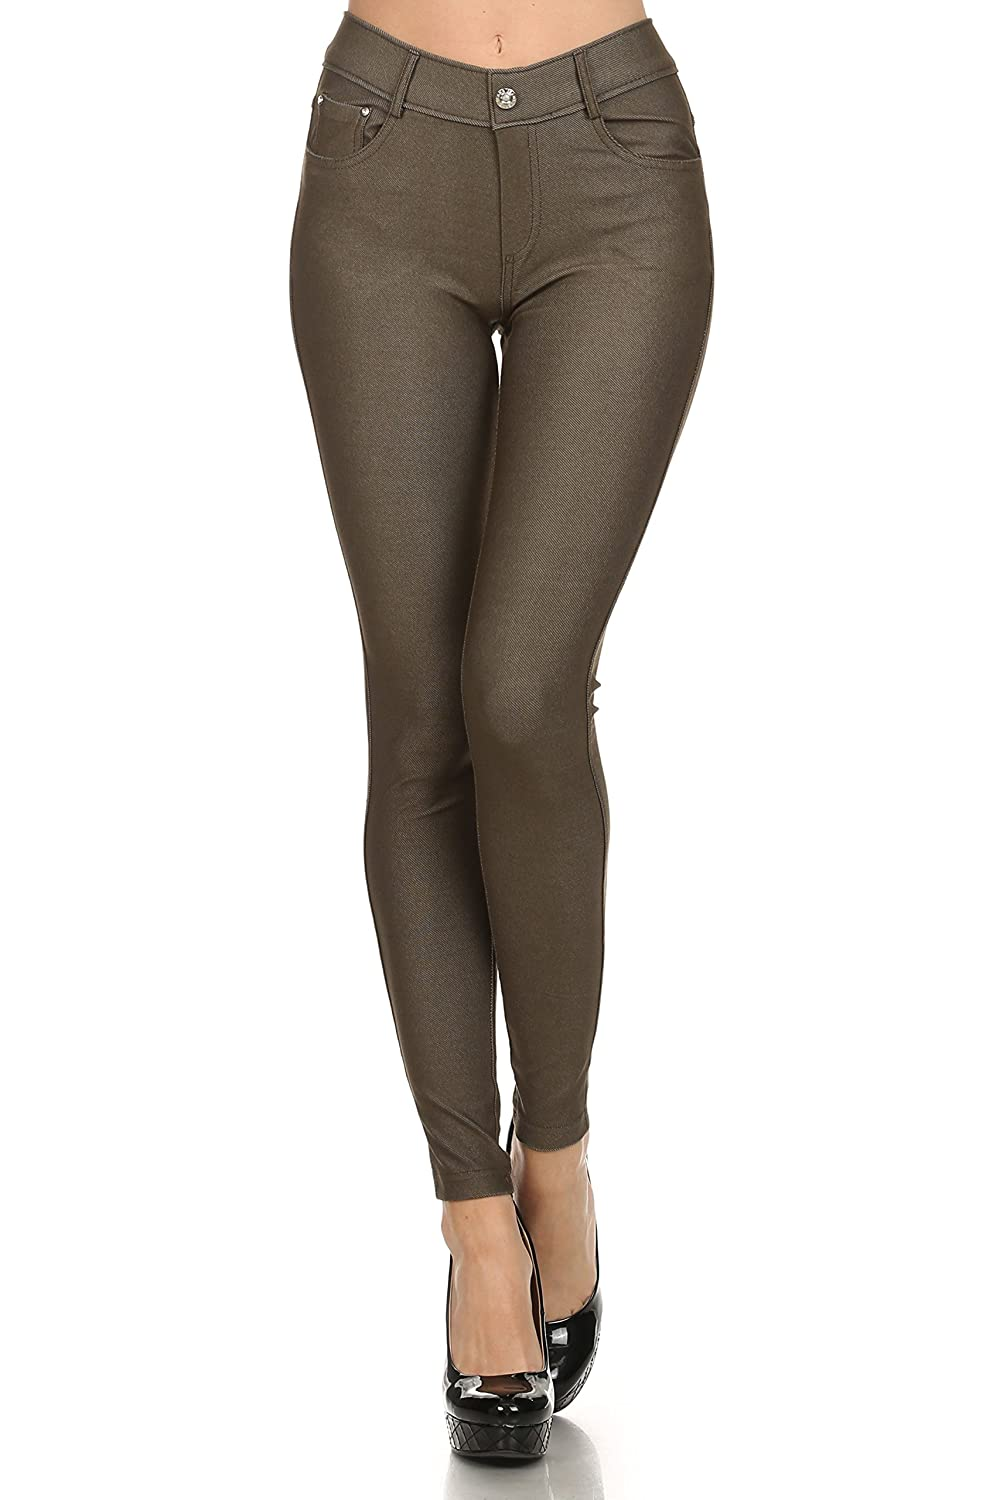 bba50561662ed ICONOFLASH Women's Stretch Jeggings - Slimming Cotton Pull On Jean Like  Leggings with Plus Size Options at Amazon Women's Clothing store: